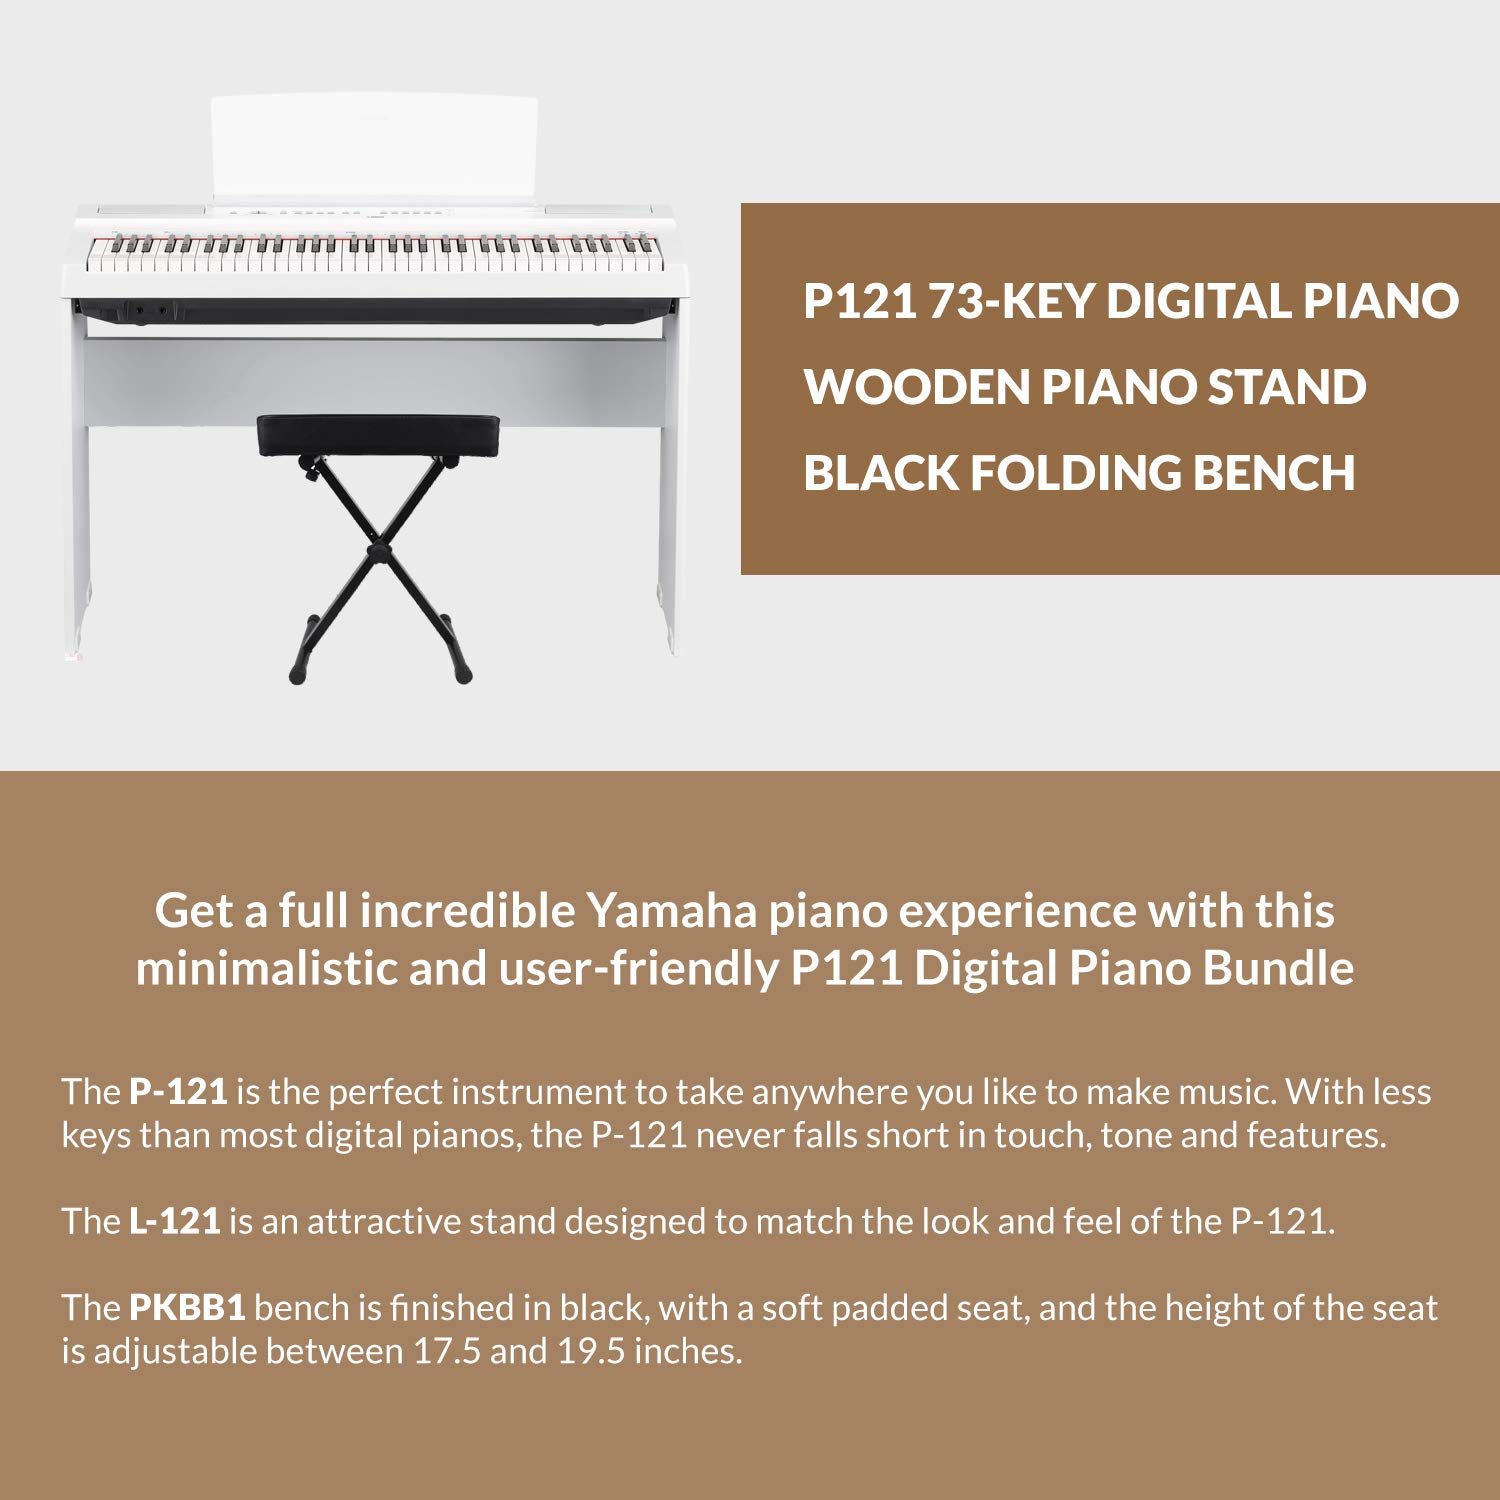 Yamaha P121 73-Key Weighted Action Digital Piano - White with Matching L121 White Furniture Stand and Bench by Yamaha Bundle (Image #5)